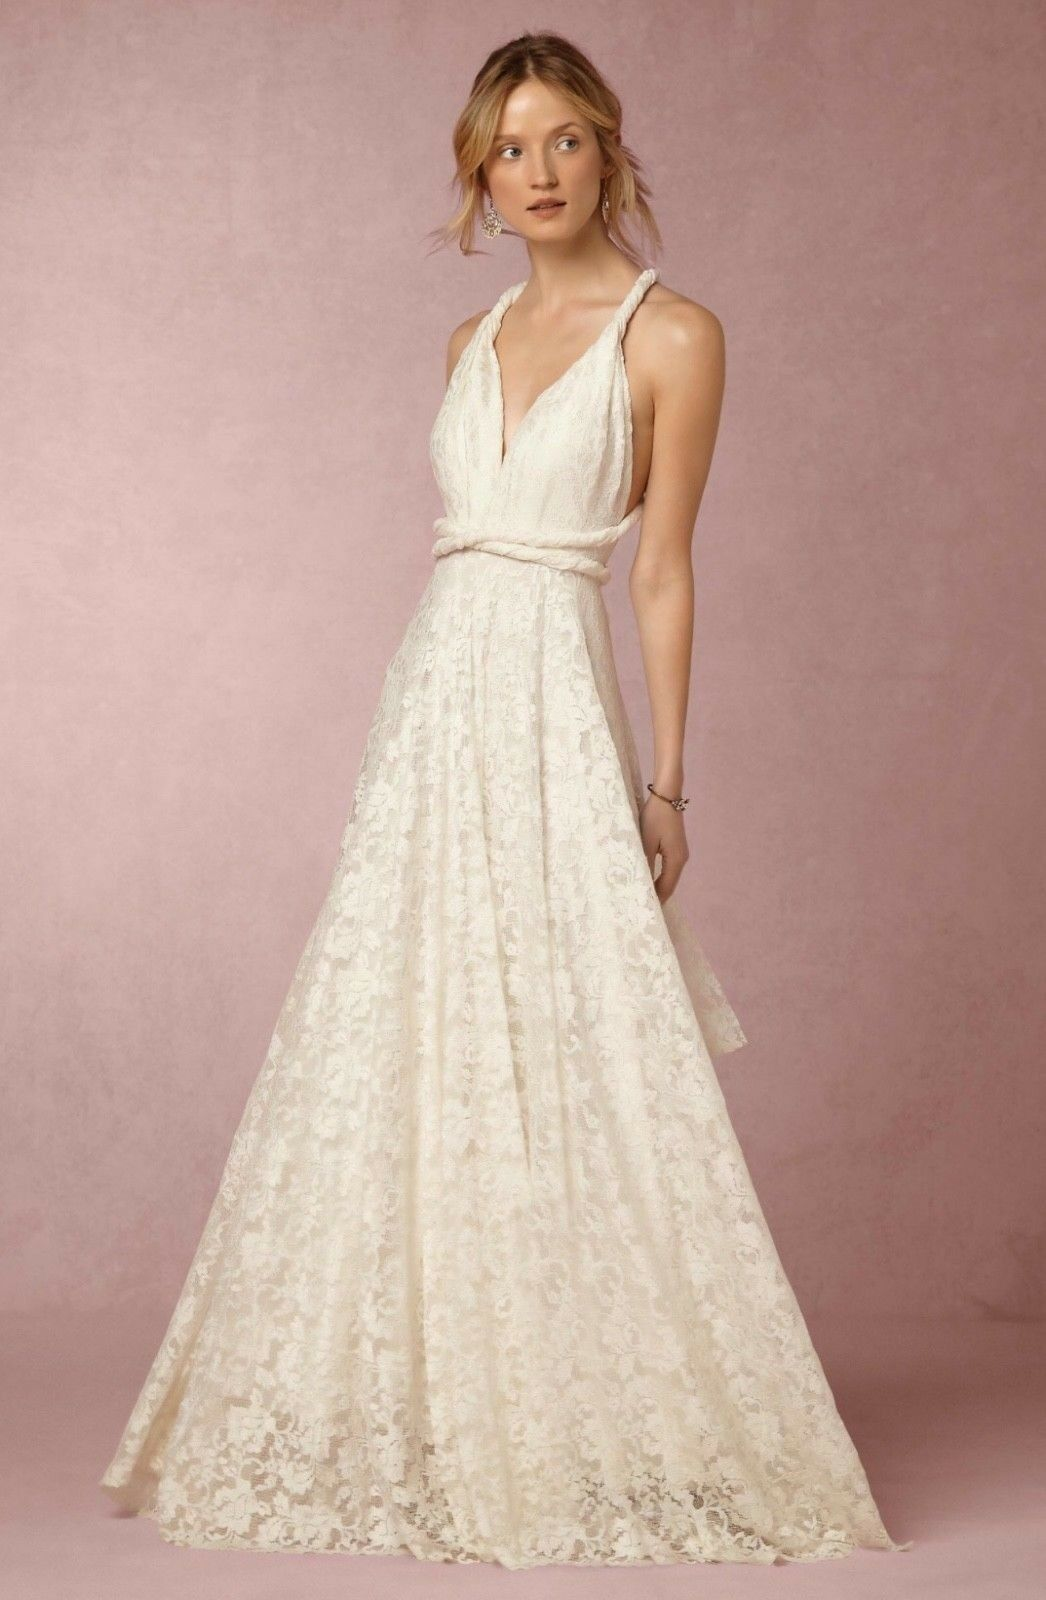 NEW ANTHROPOLOGIE BHLDN Twobirds Noelle Lace Wedding Dress Bridal ...